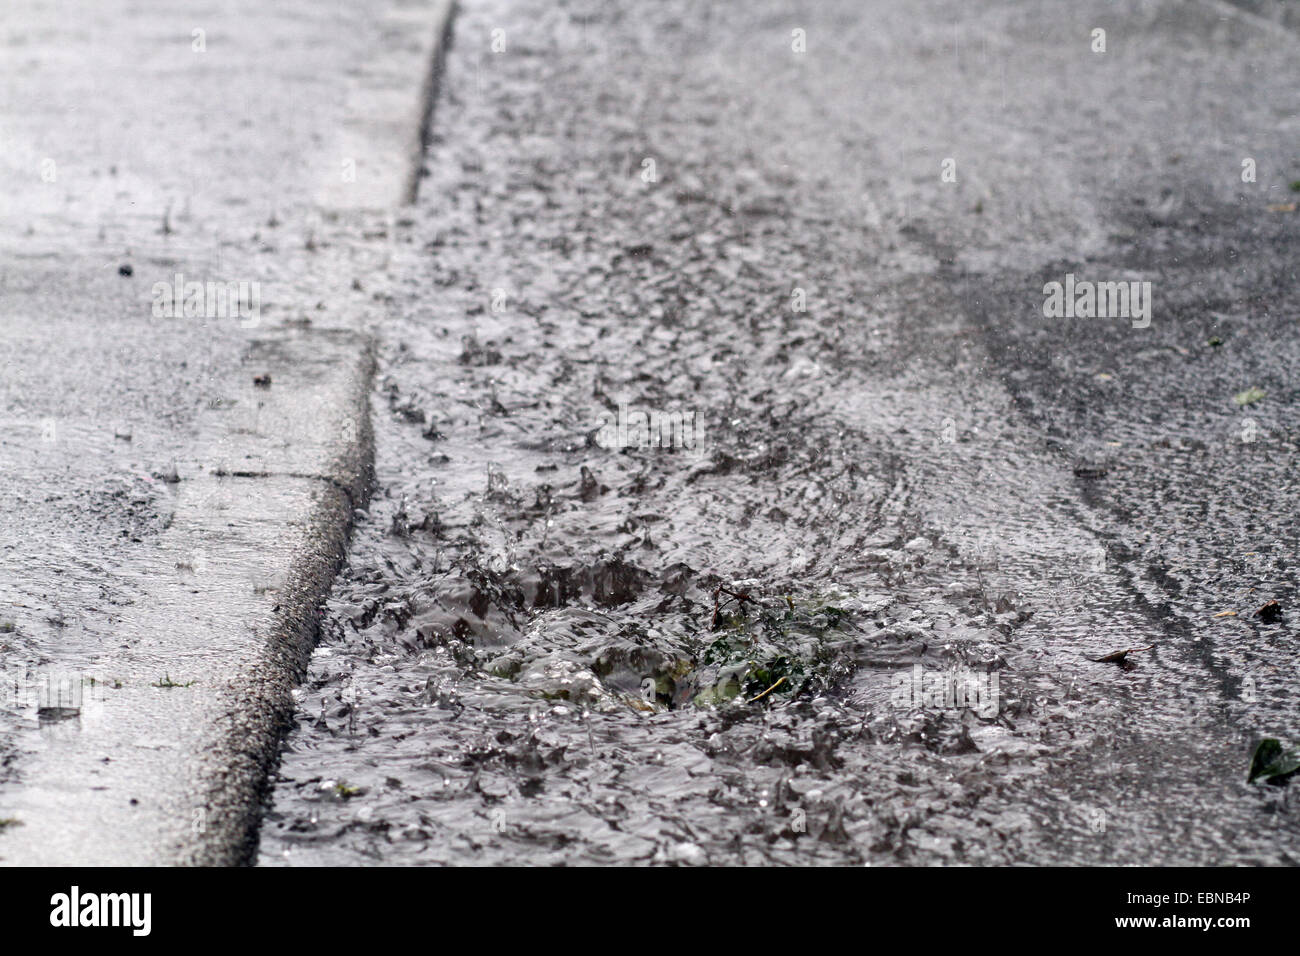 flooded gutter and gully caused by heavy rain, Germany - Stock Image